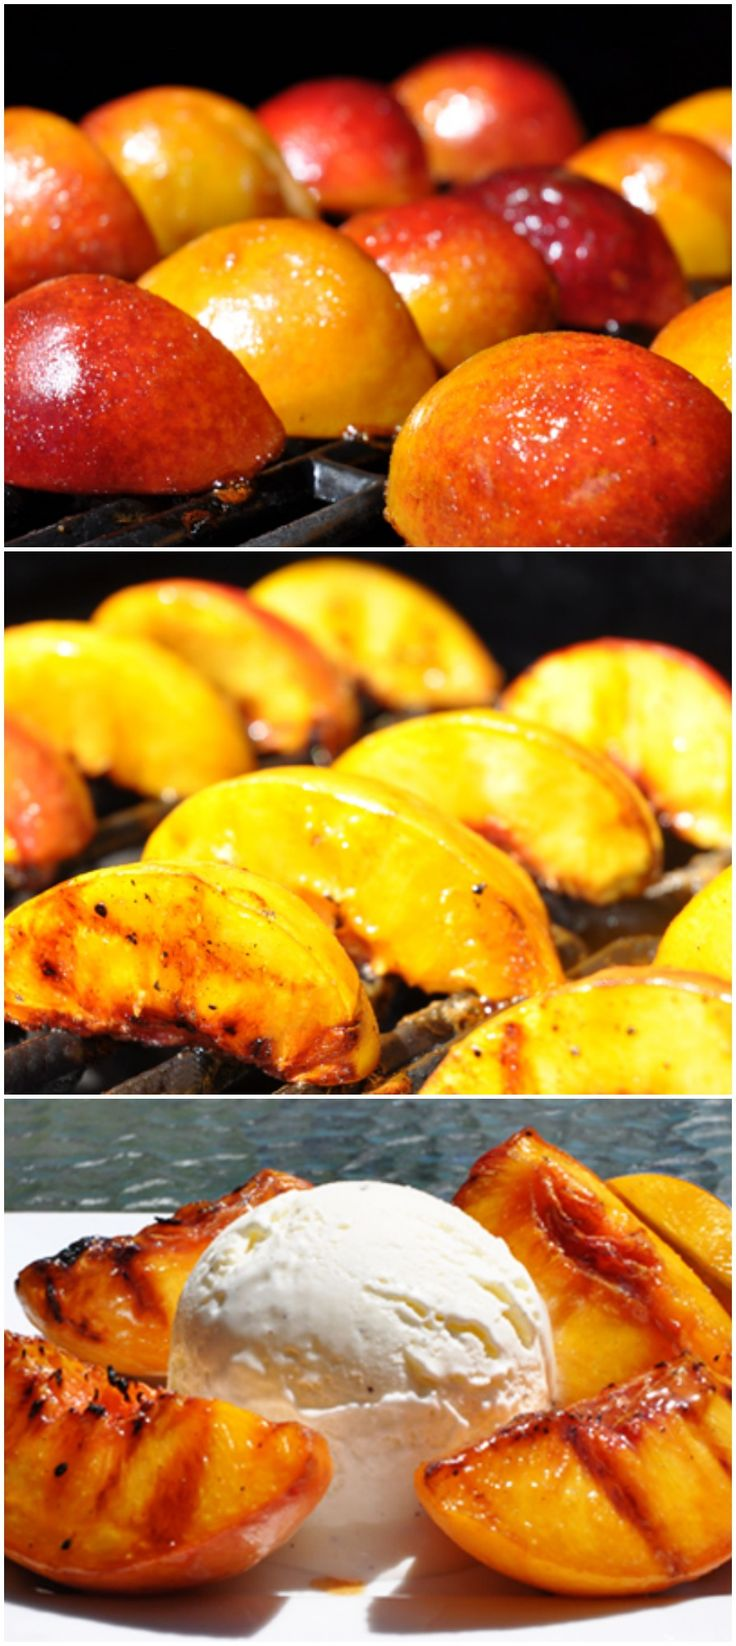 My favorite dessert! Grilled Peaches + Ice Cream